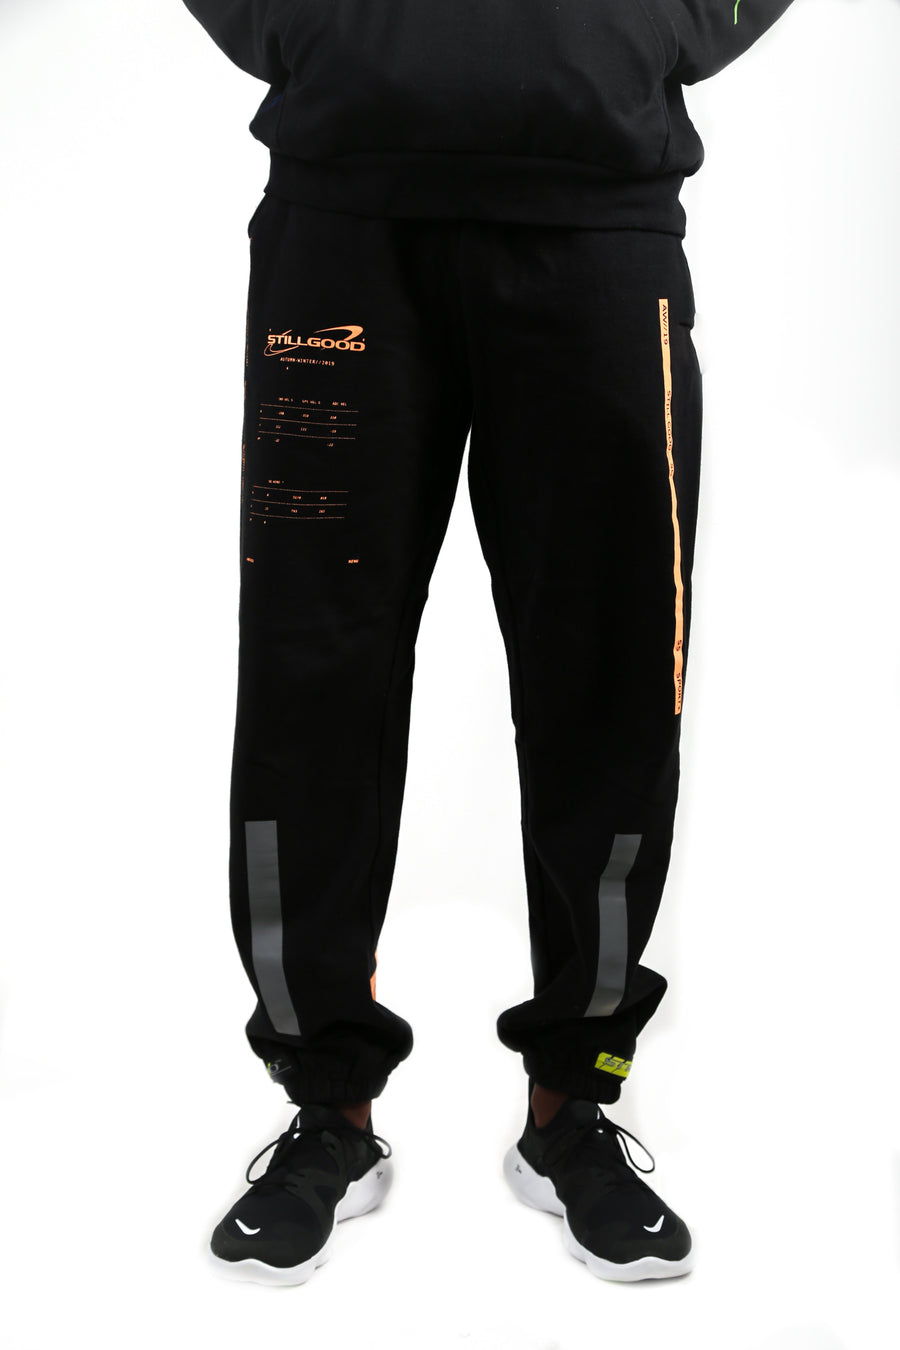 Spatial Sweatpants Black / S | Still Good